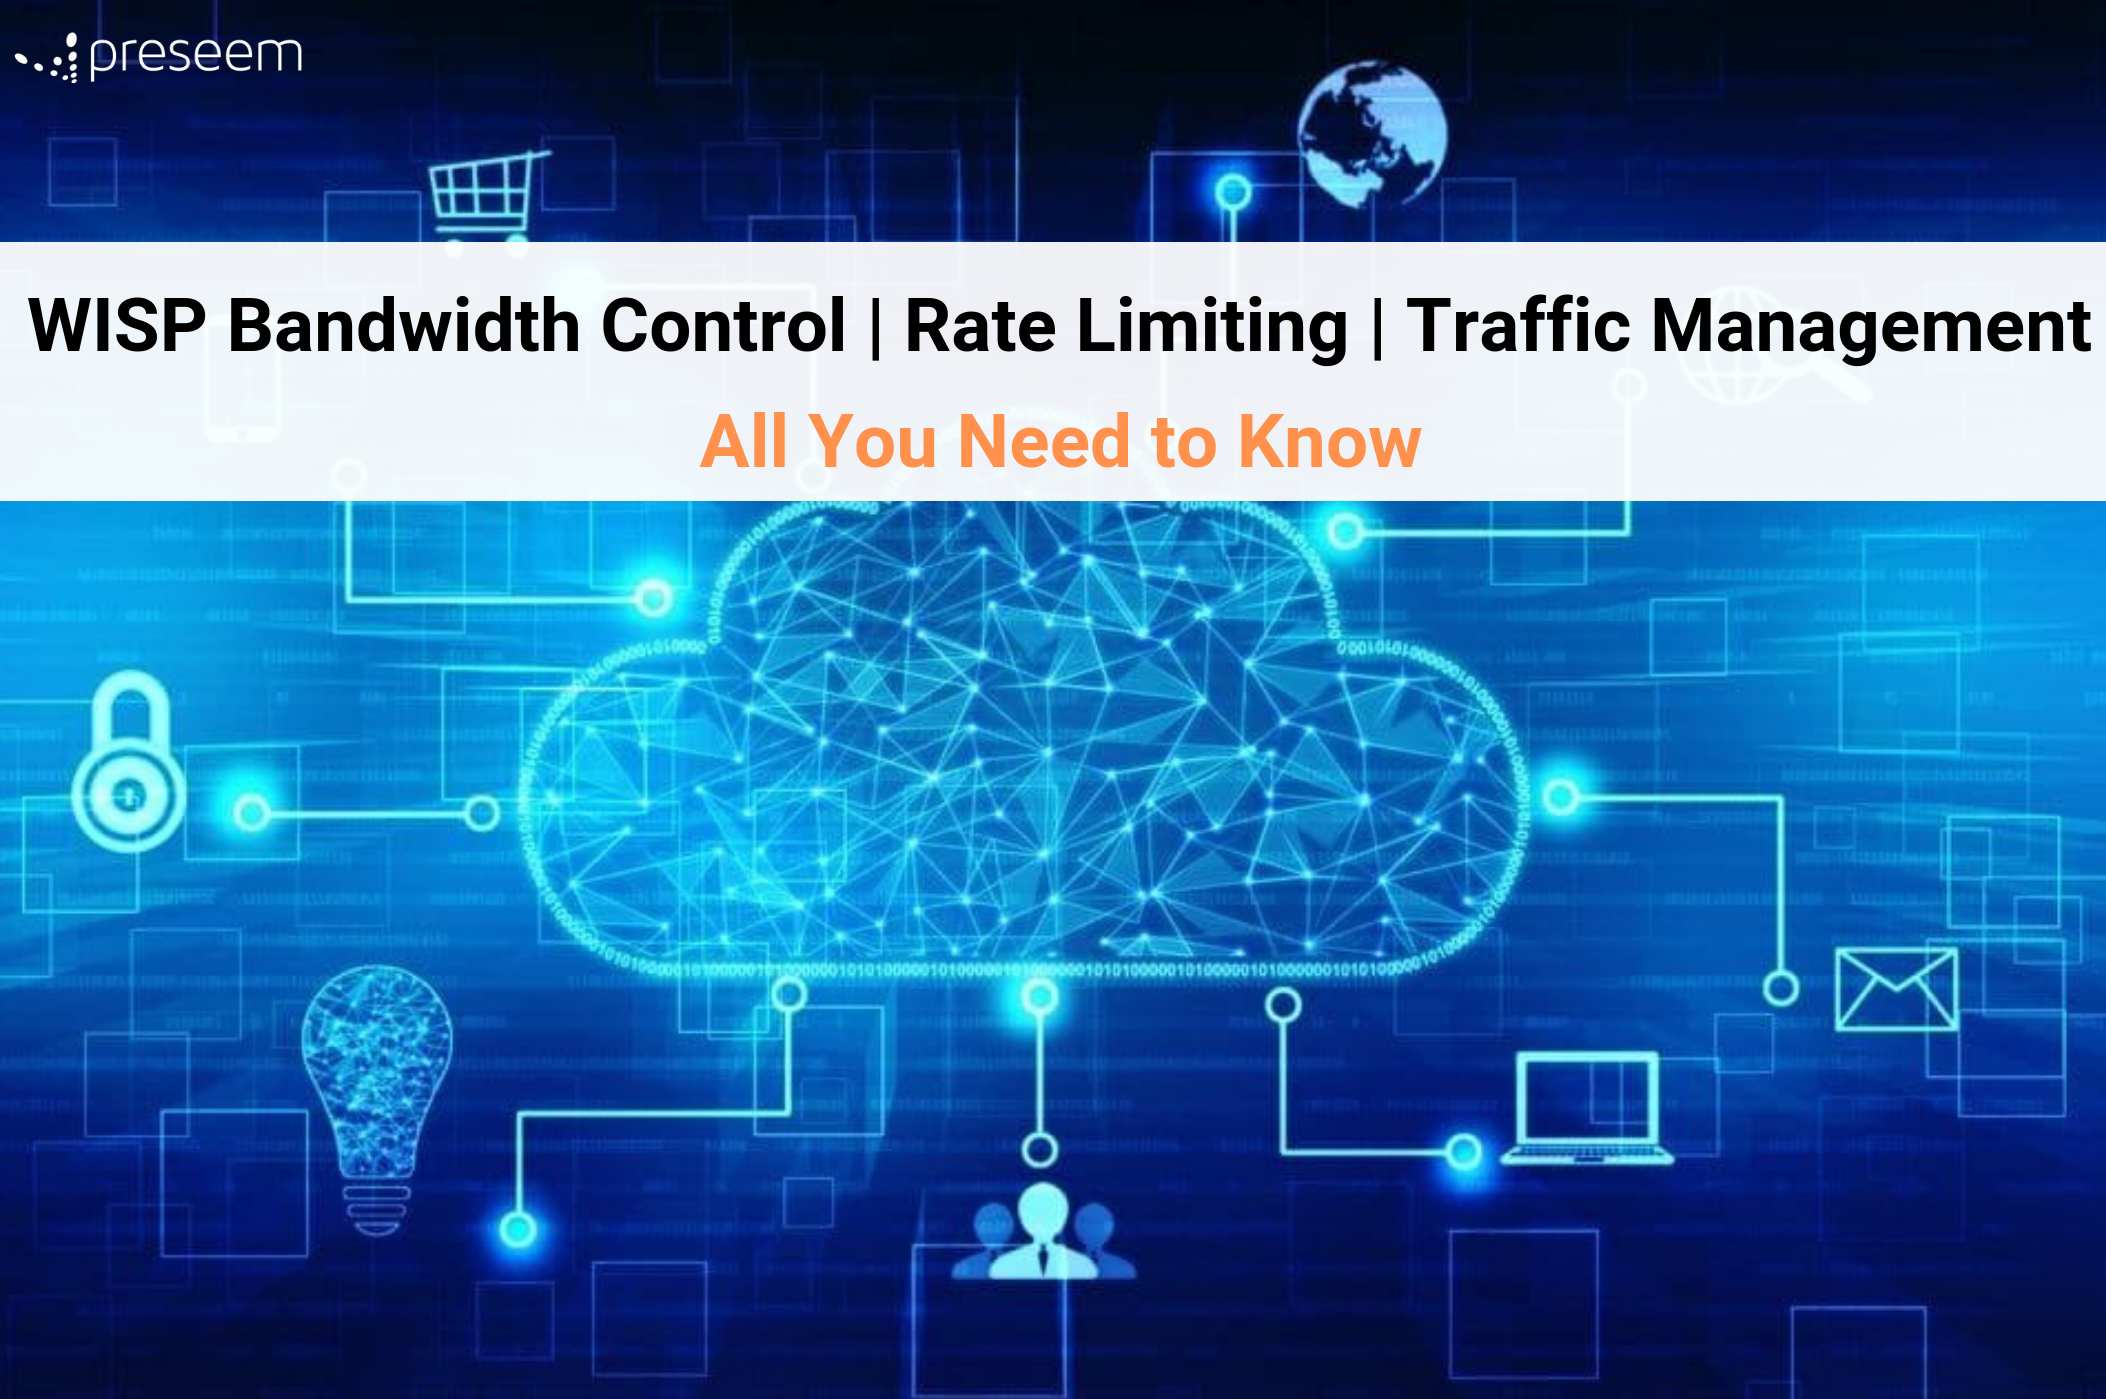 WISP Bandwidth Control | Rate Limiting | Traffic Management – All You Need to Know